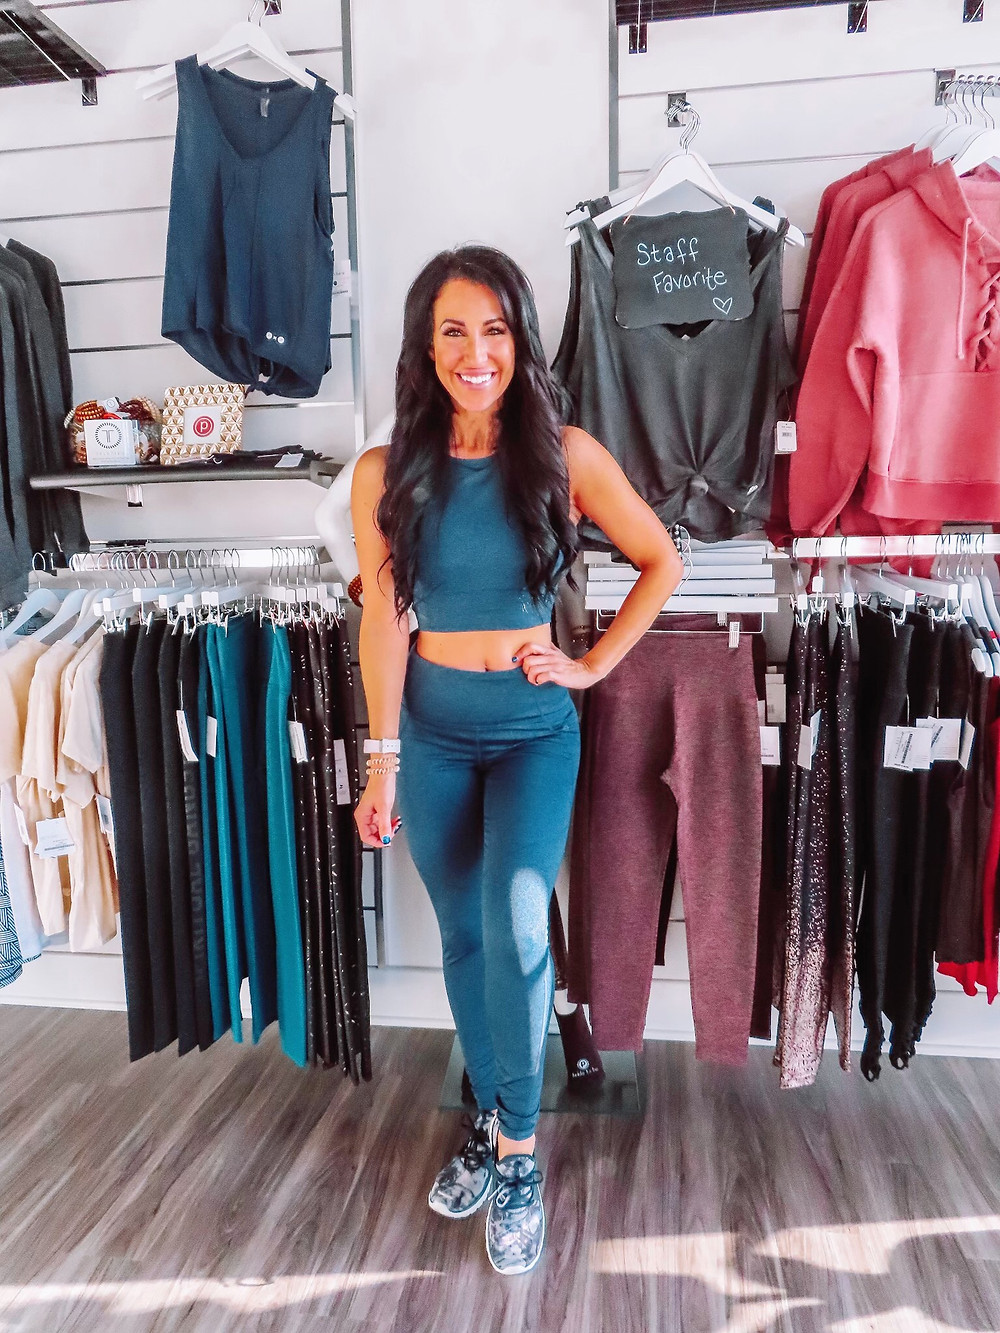 Indianapolis fitness, pure barre, meet me at the barre, Indianapolis blogger, fit life, healthy, active, fit mom, Indianapolis gym